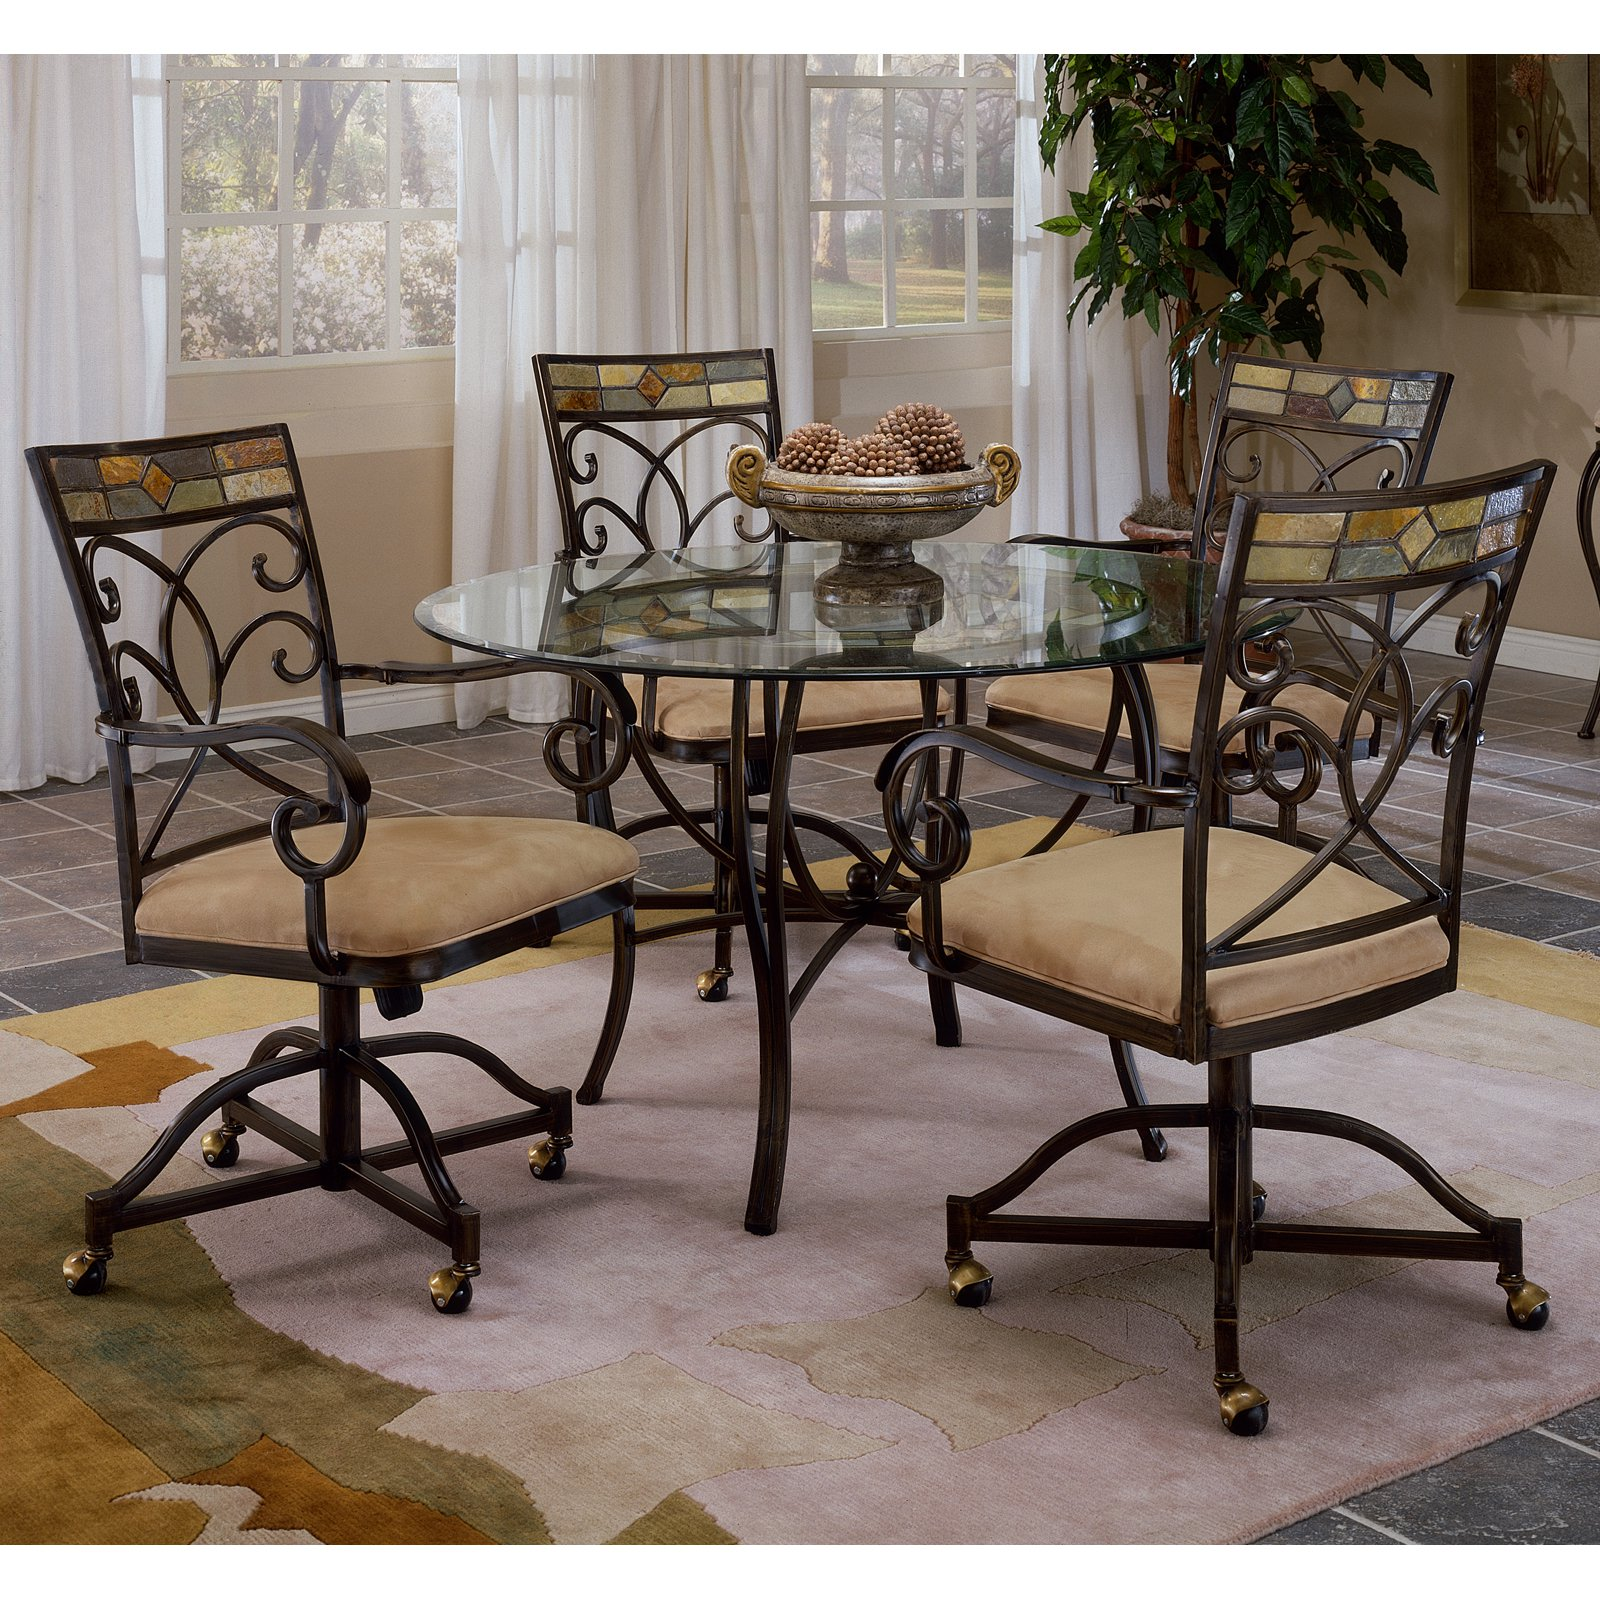 Hillsdale Pompei 5 Piece Dining Set With Glass Top U0026amp; Castered Chairs Black  Gold/Slate Mosaic   Walmart.com